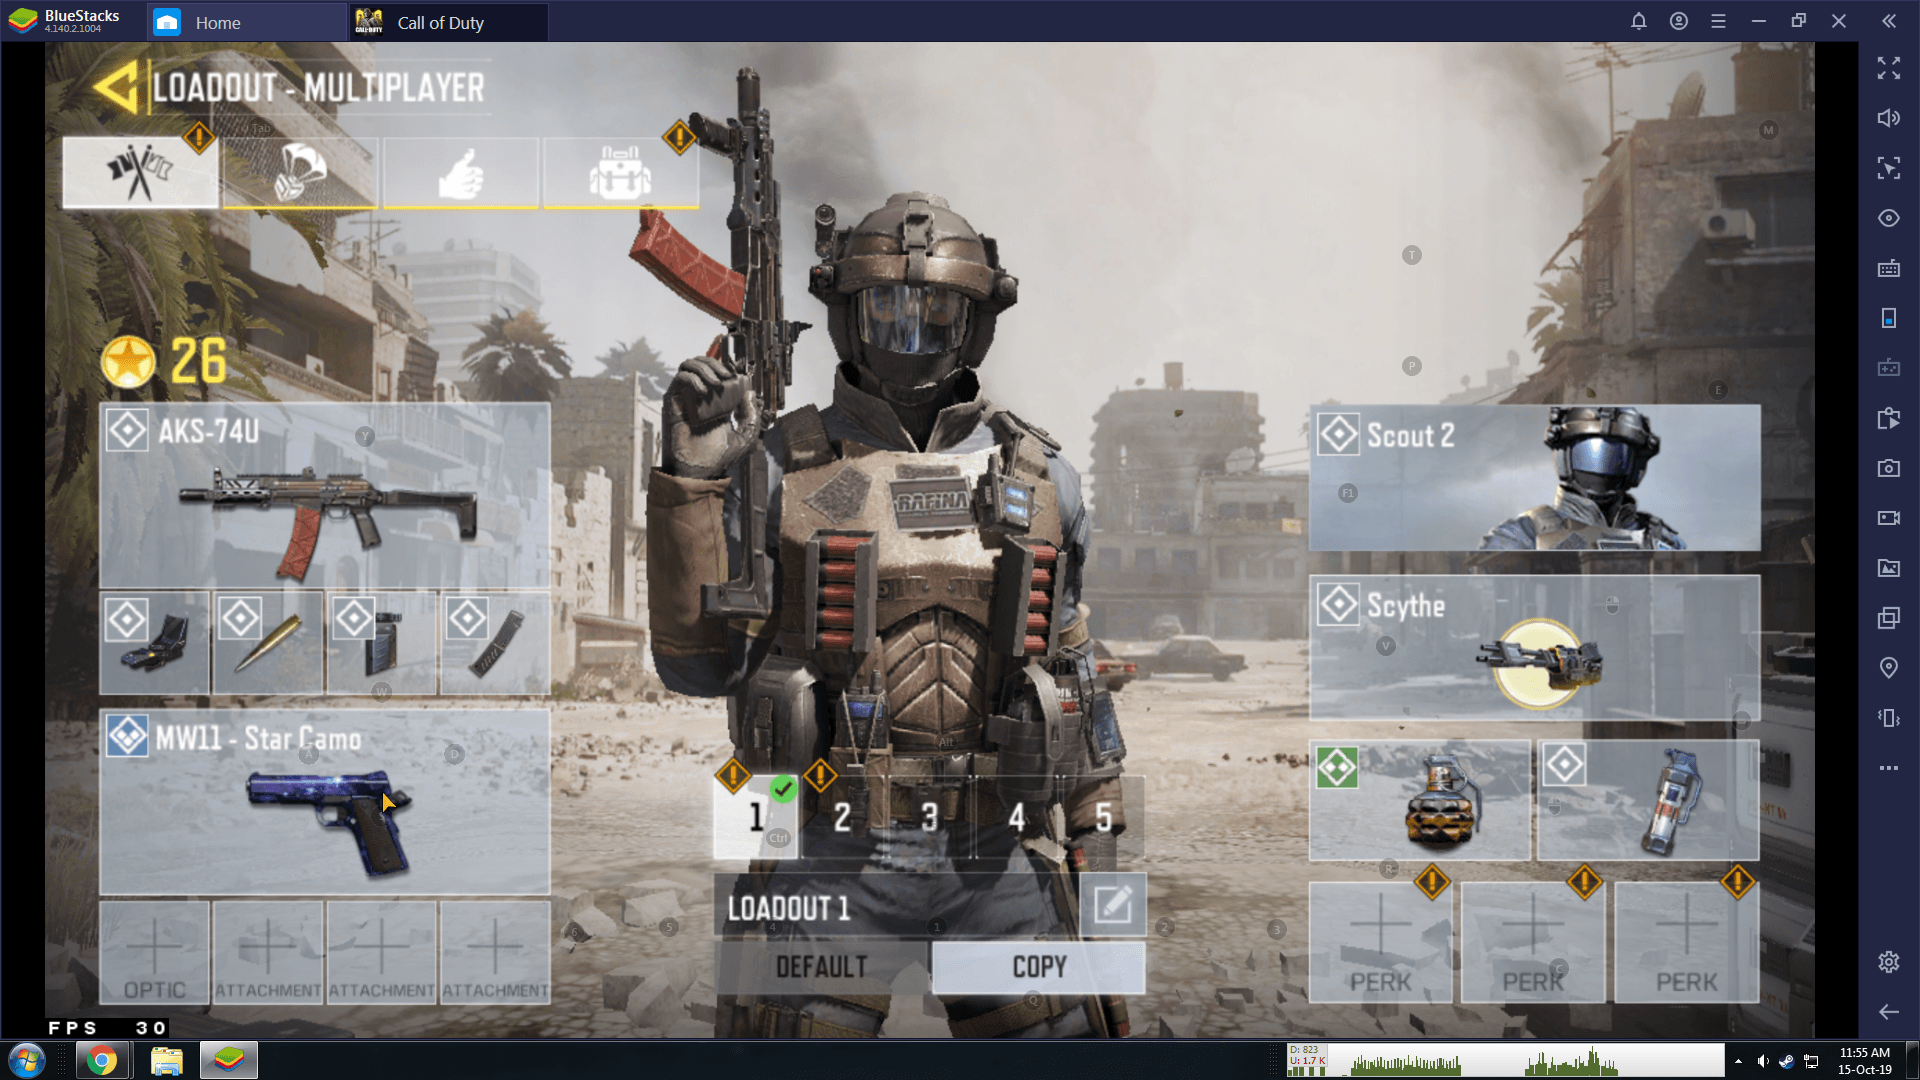 Free For All The Hot New Game Mode In Call Of Duty Mobile On Pc Bluestacks